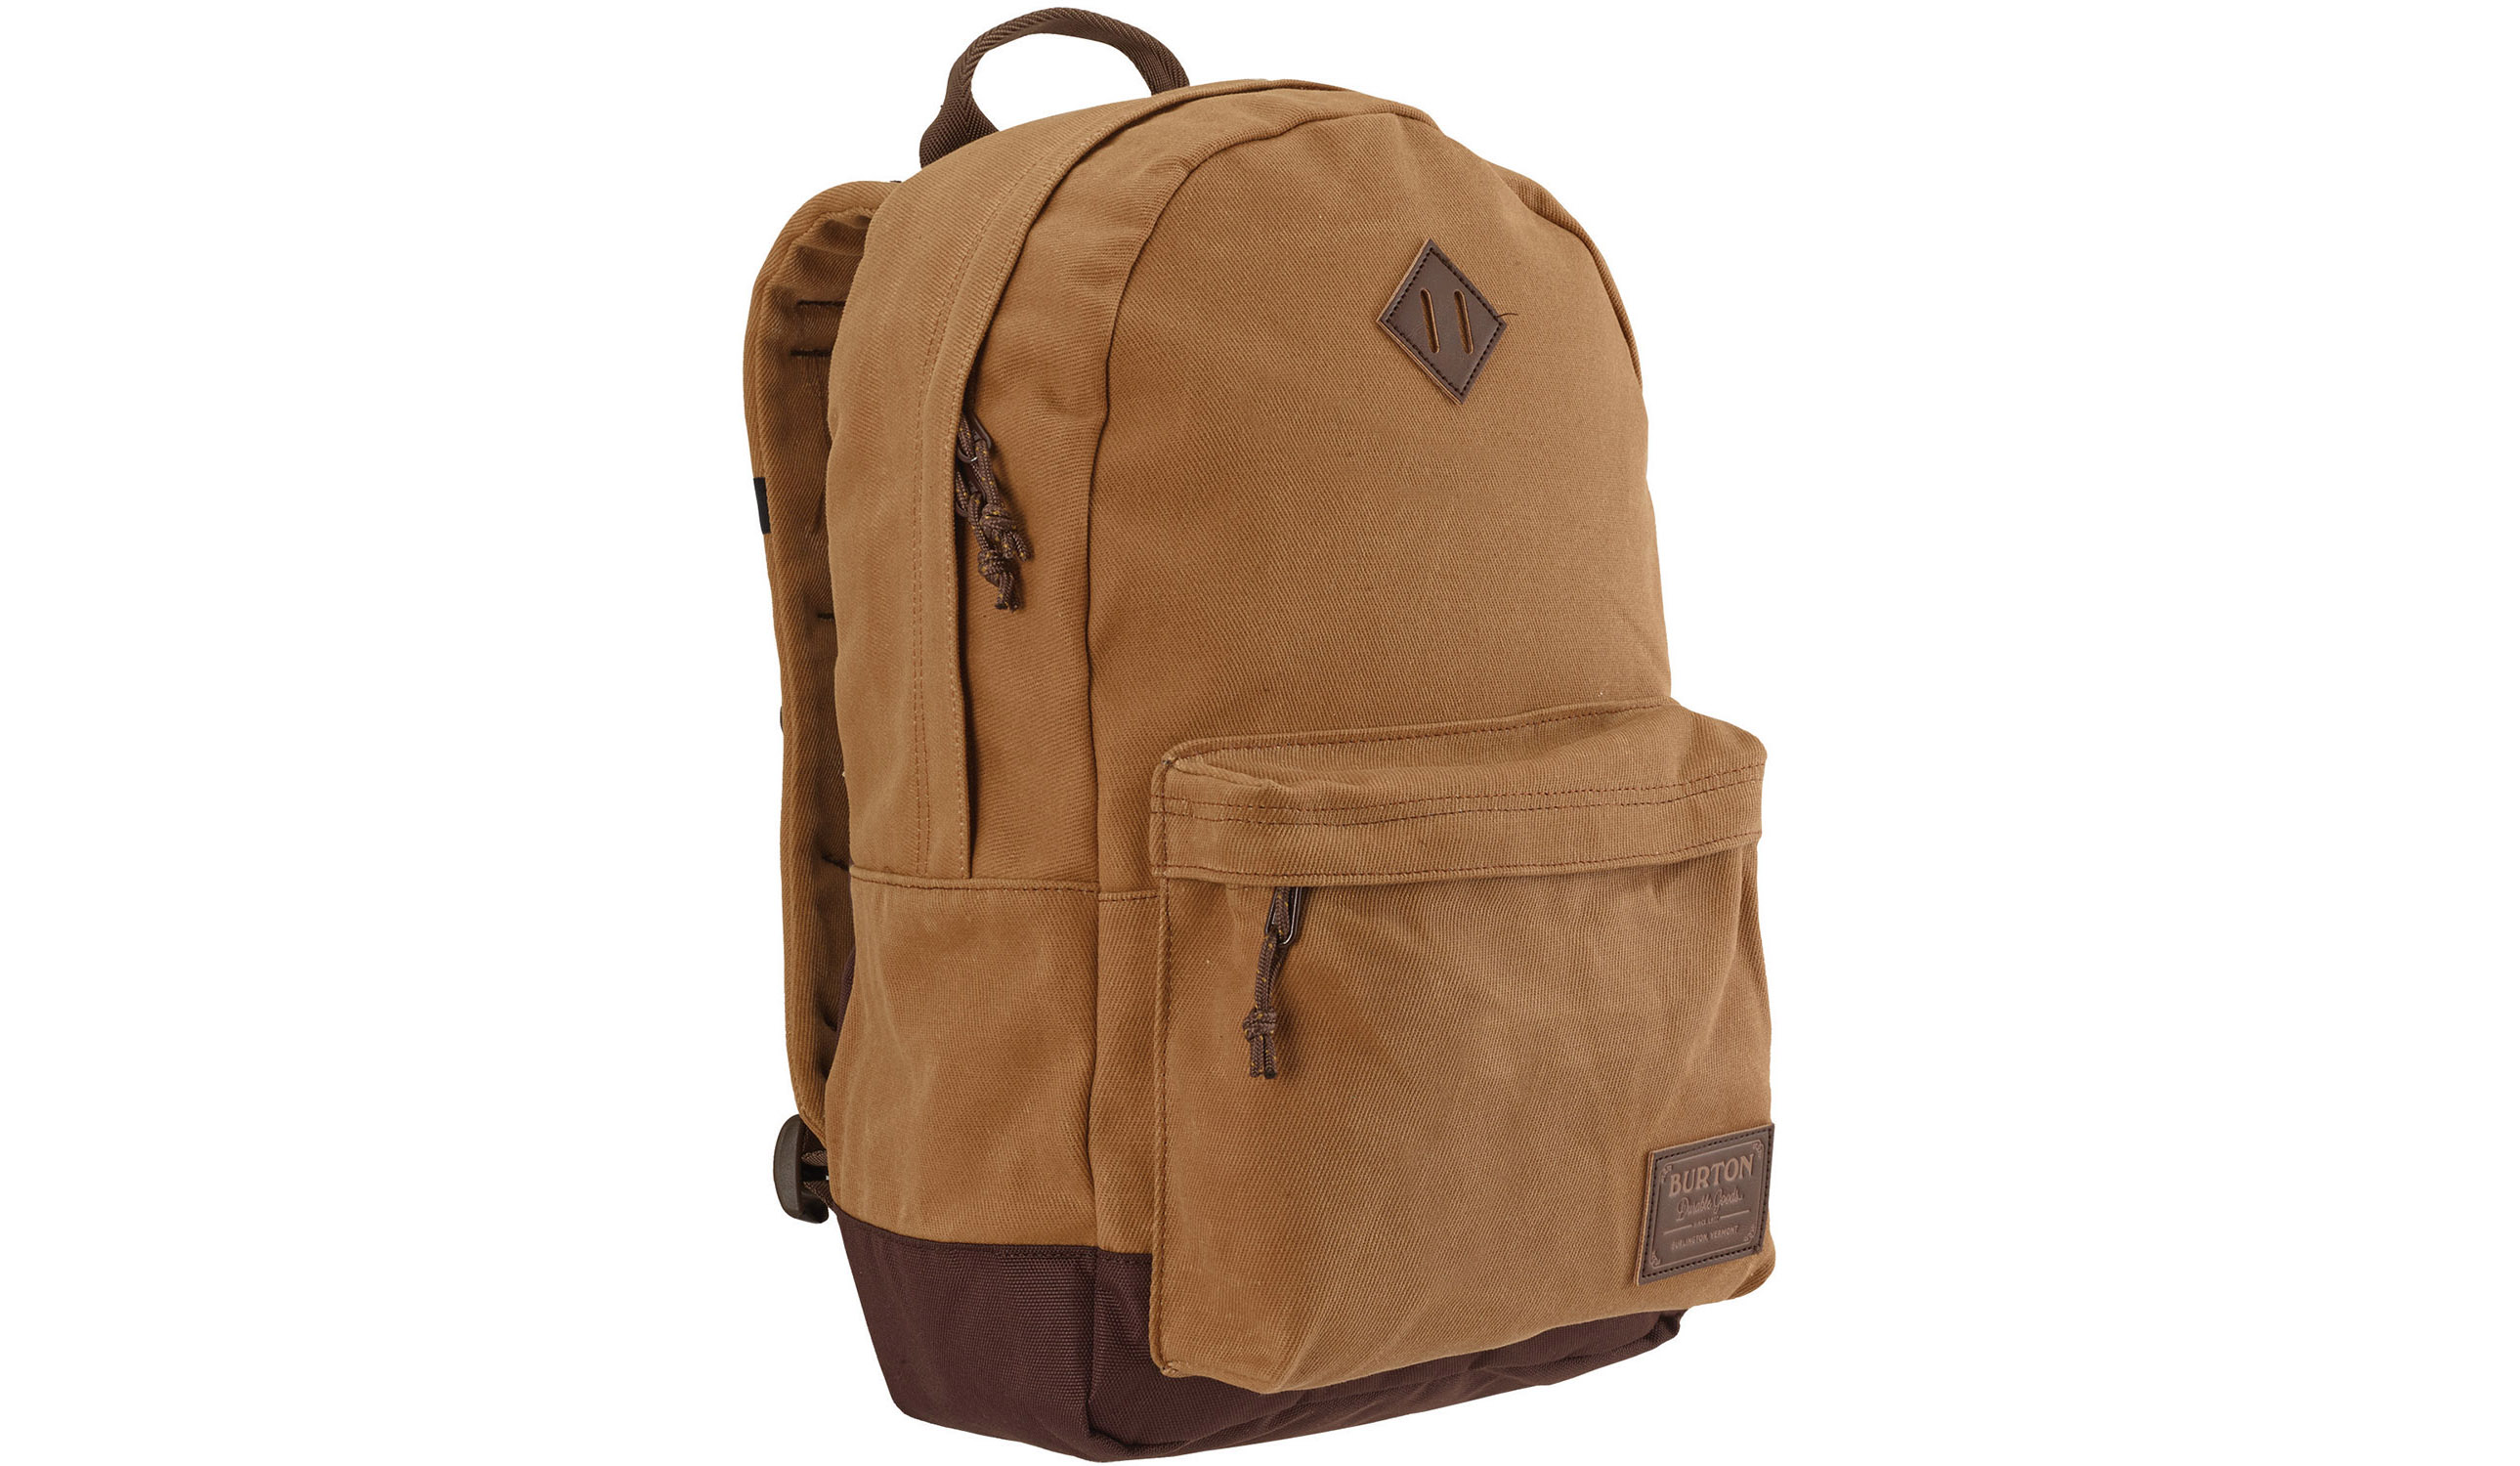 9ff2c27aced9 Some awesome alternatives to Herschel backpacks